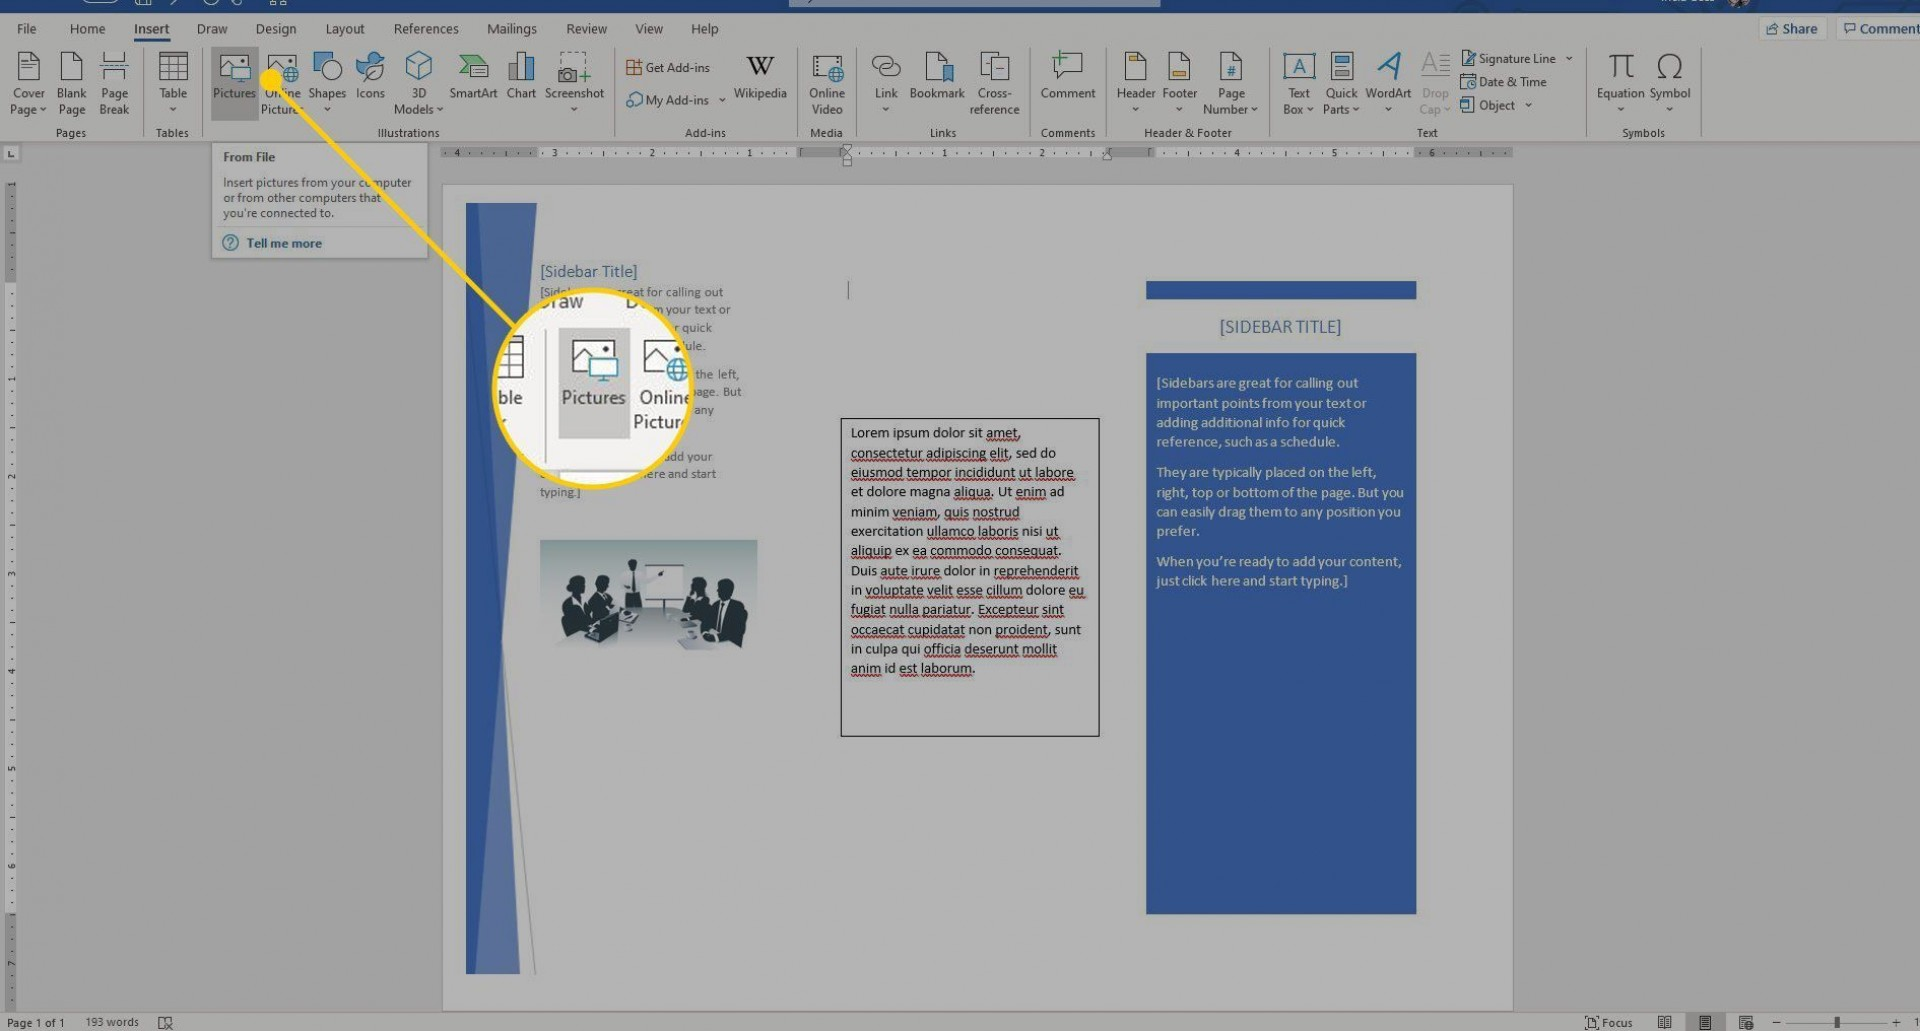 005 Marvelou M Word 2007 Brochure Template Highest Quality  Templates Microsoft Office Download For Free1920